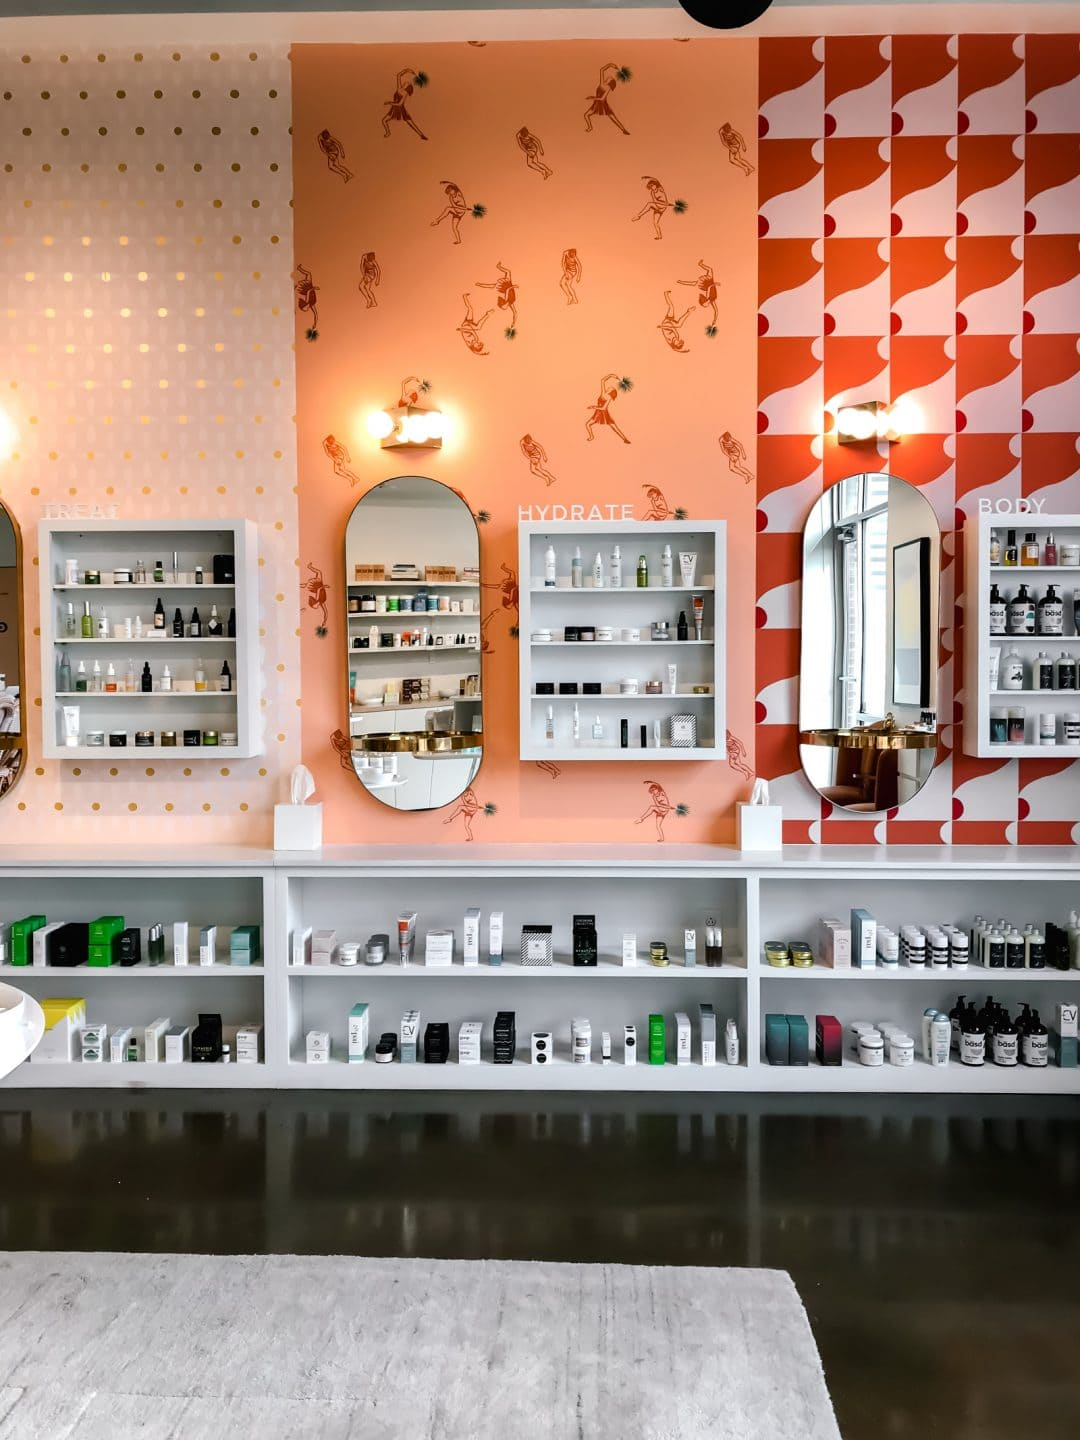 The product wall of skincare items at Lemon Laine Oil Bar in Nashville, TN.